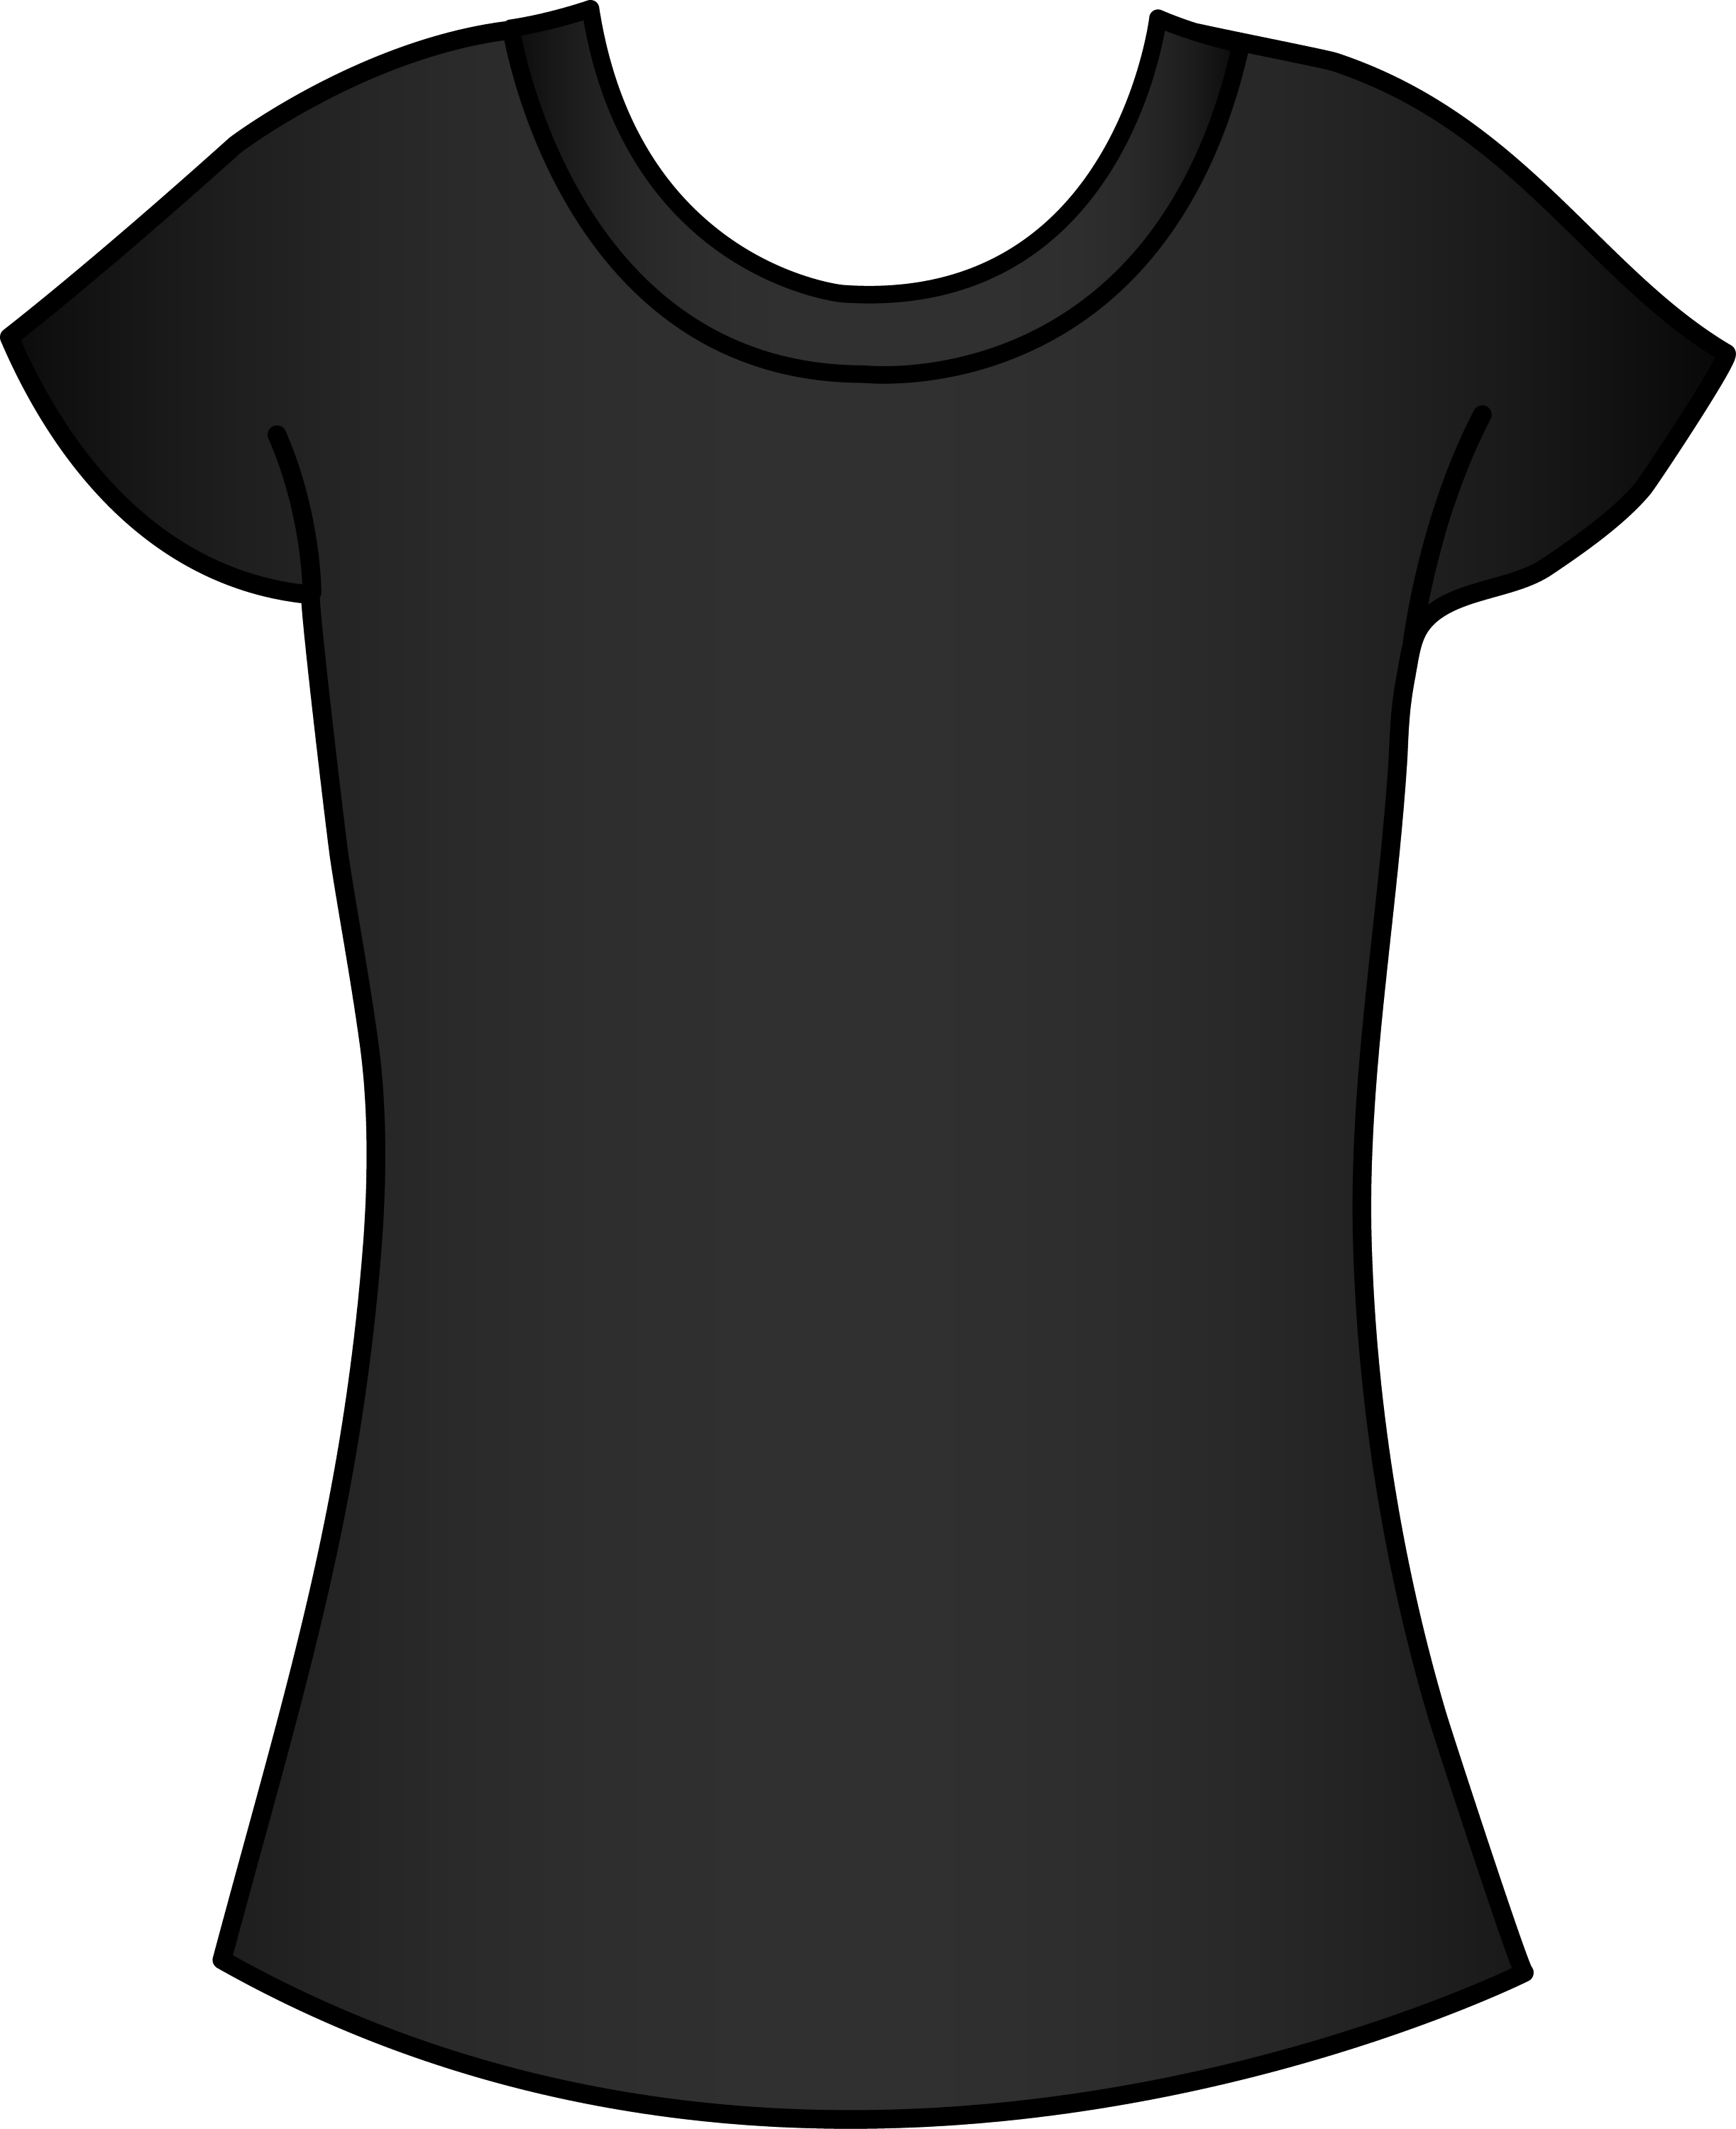 Womens black t shirt template free clip art Womens black tee shirt